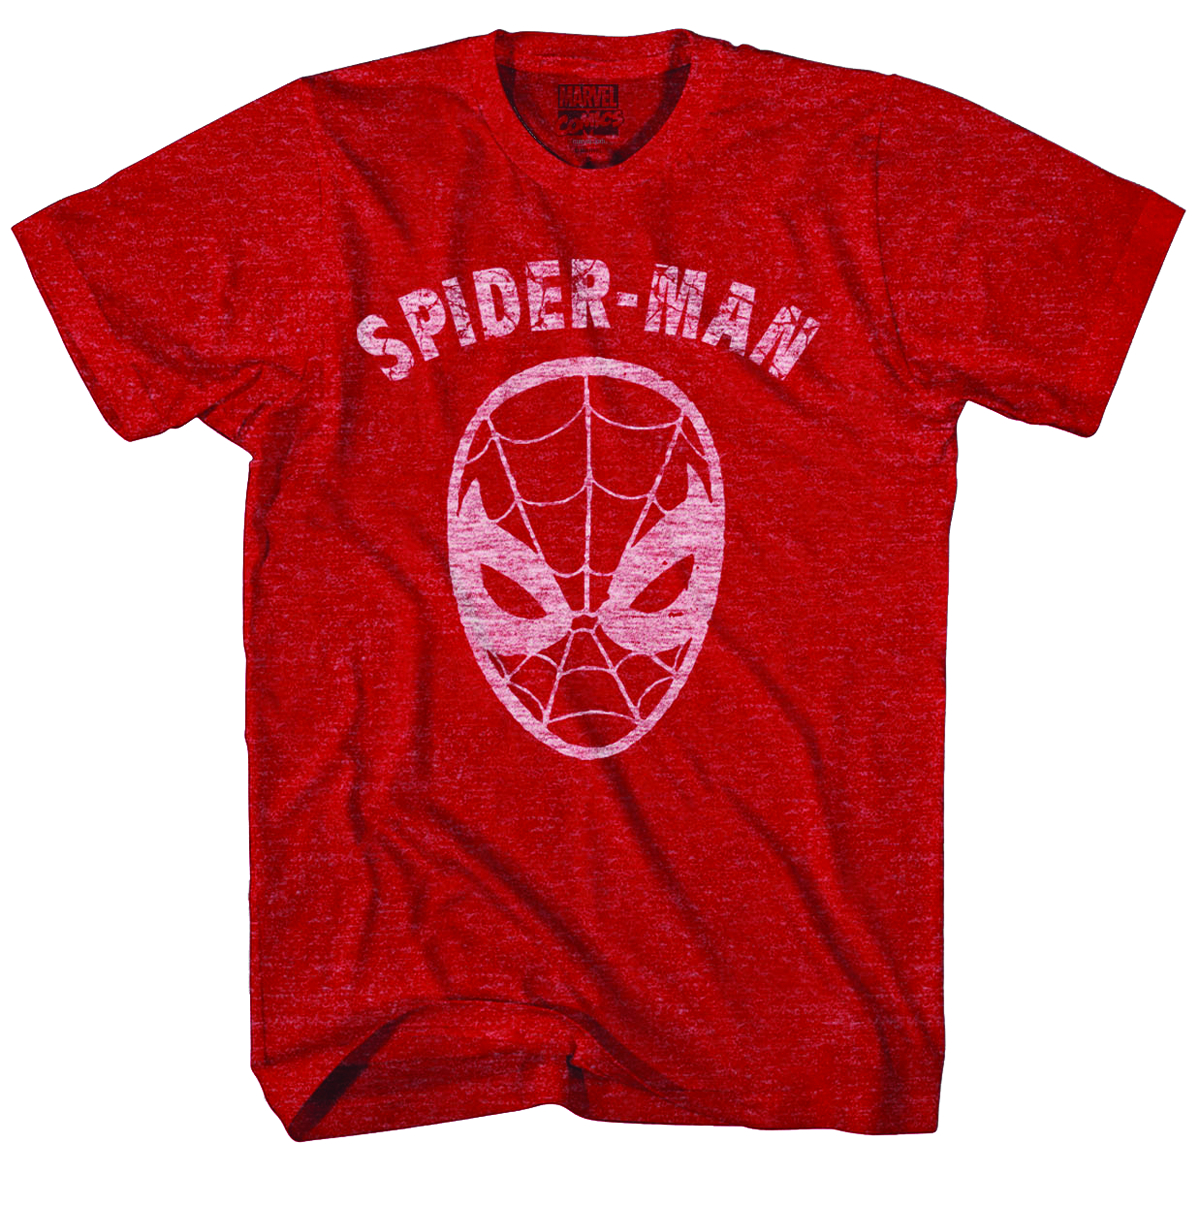 SPIDER-MAN INVERSE ICON PX RED HTHR T/S XXL